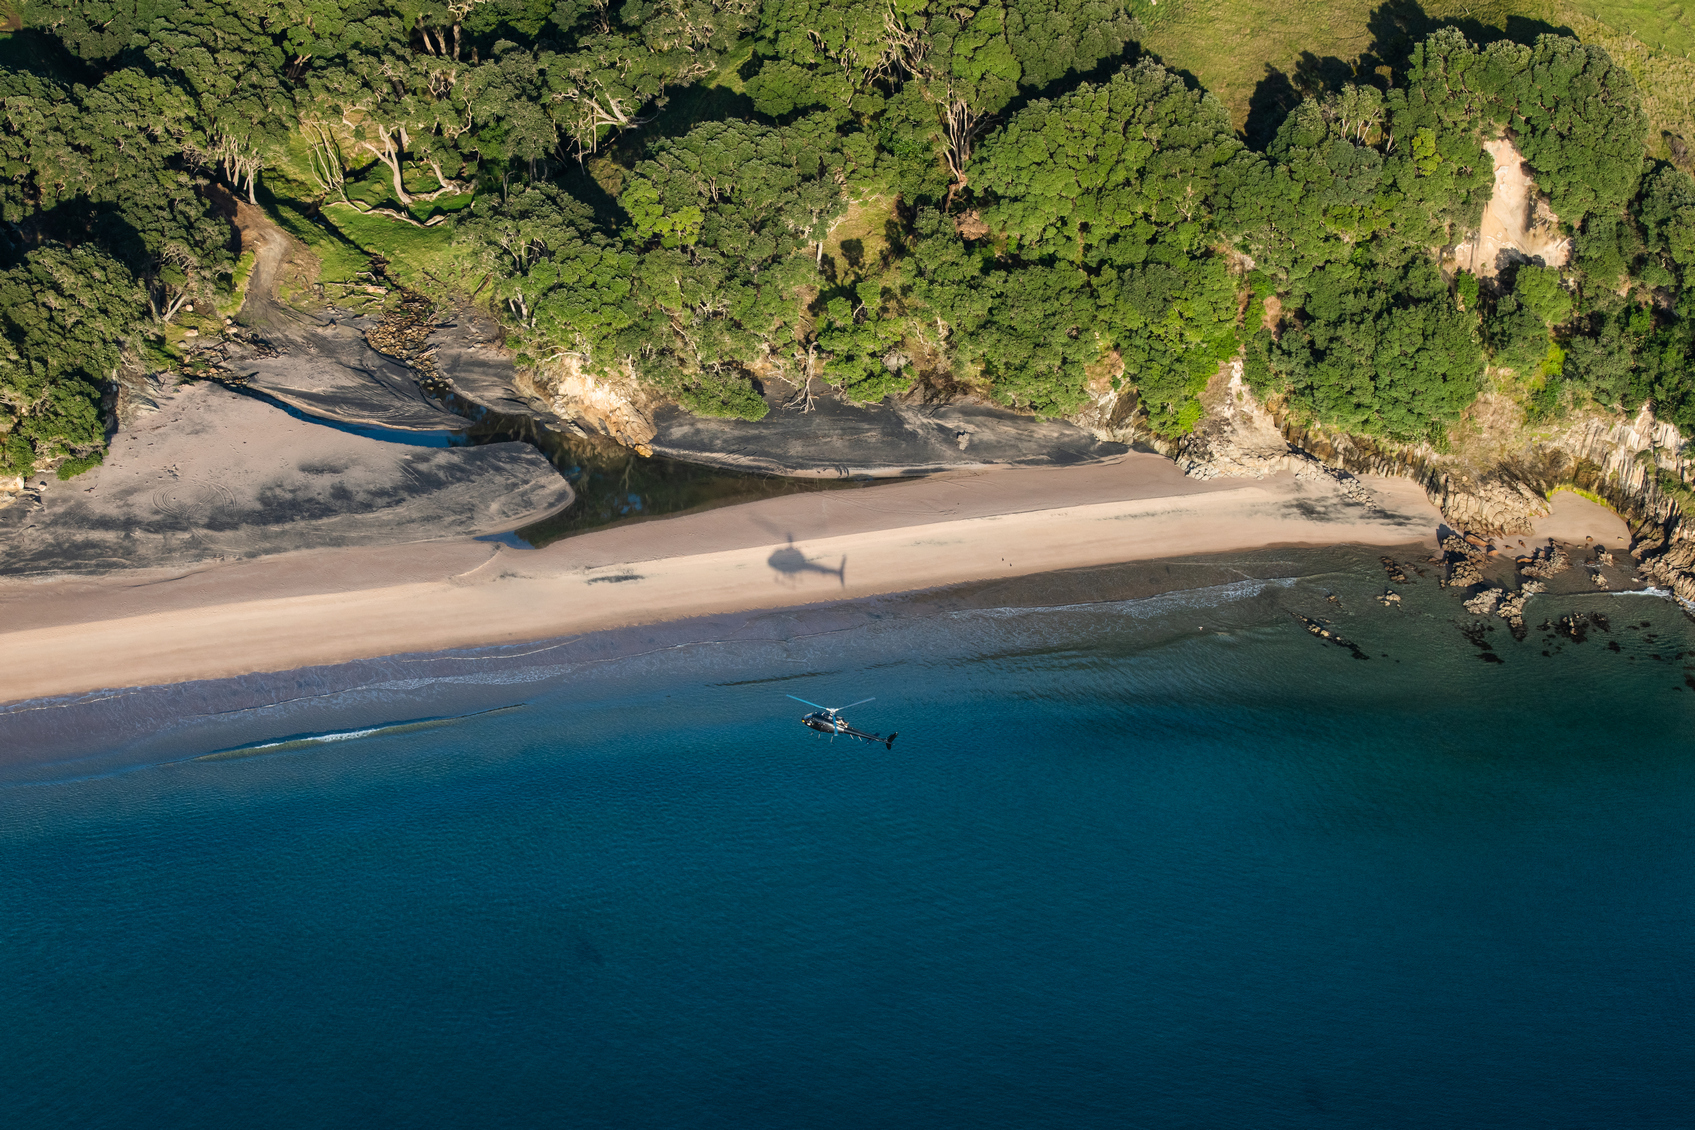 Helicopter landing on a Coromandel beach